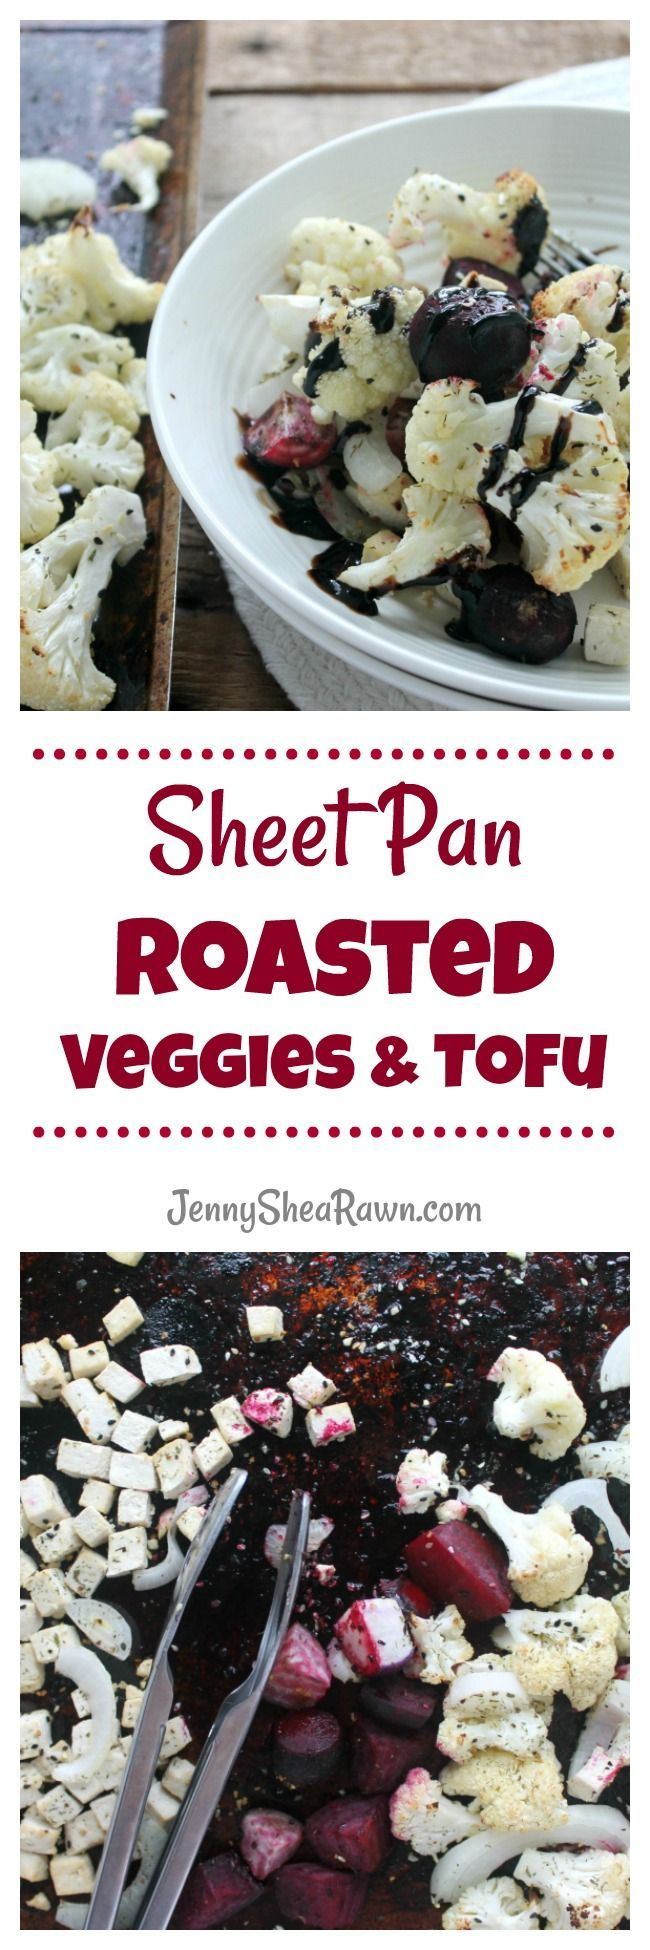 Sheet Pan Roasted Veggies & Tofu.      Roasted cauliflower, beets, onion and tofu. A quick, easy and nutrient-packed dinner that's ready in 30 minutes. There's minimal clean-up, so it's perfect for weeknights.  #RoastedVeggies #SheetPanDinners #SheetPanRecipes #HealthyFallRecipes #VegetarianRecipes #HealthySheetPanRecipes #TofuRecipes #VeganRecipes #TofuDinnerRecipes #MyCapeCodKitchen #TheRecipeReDux